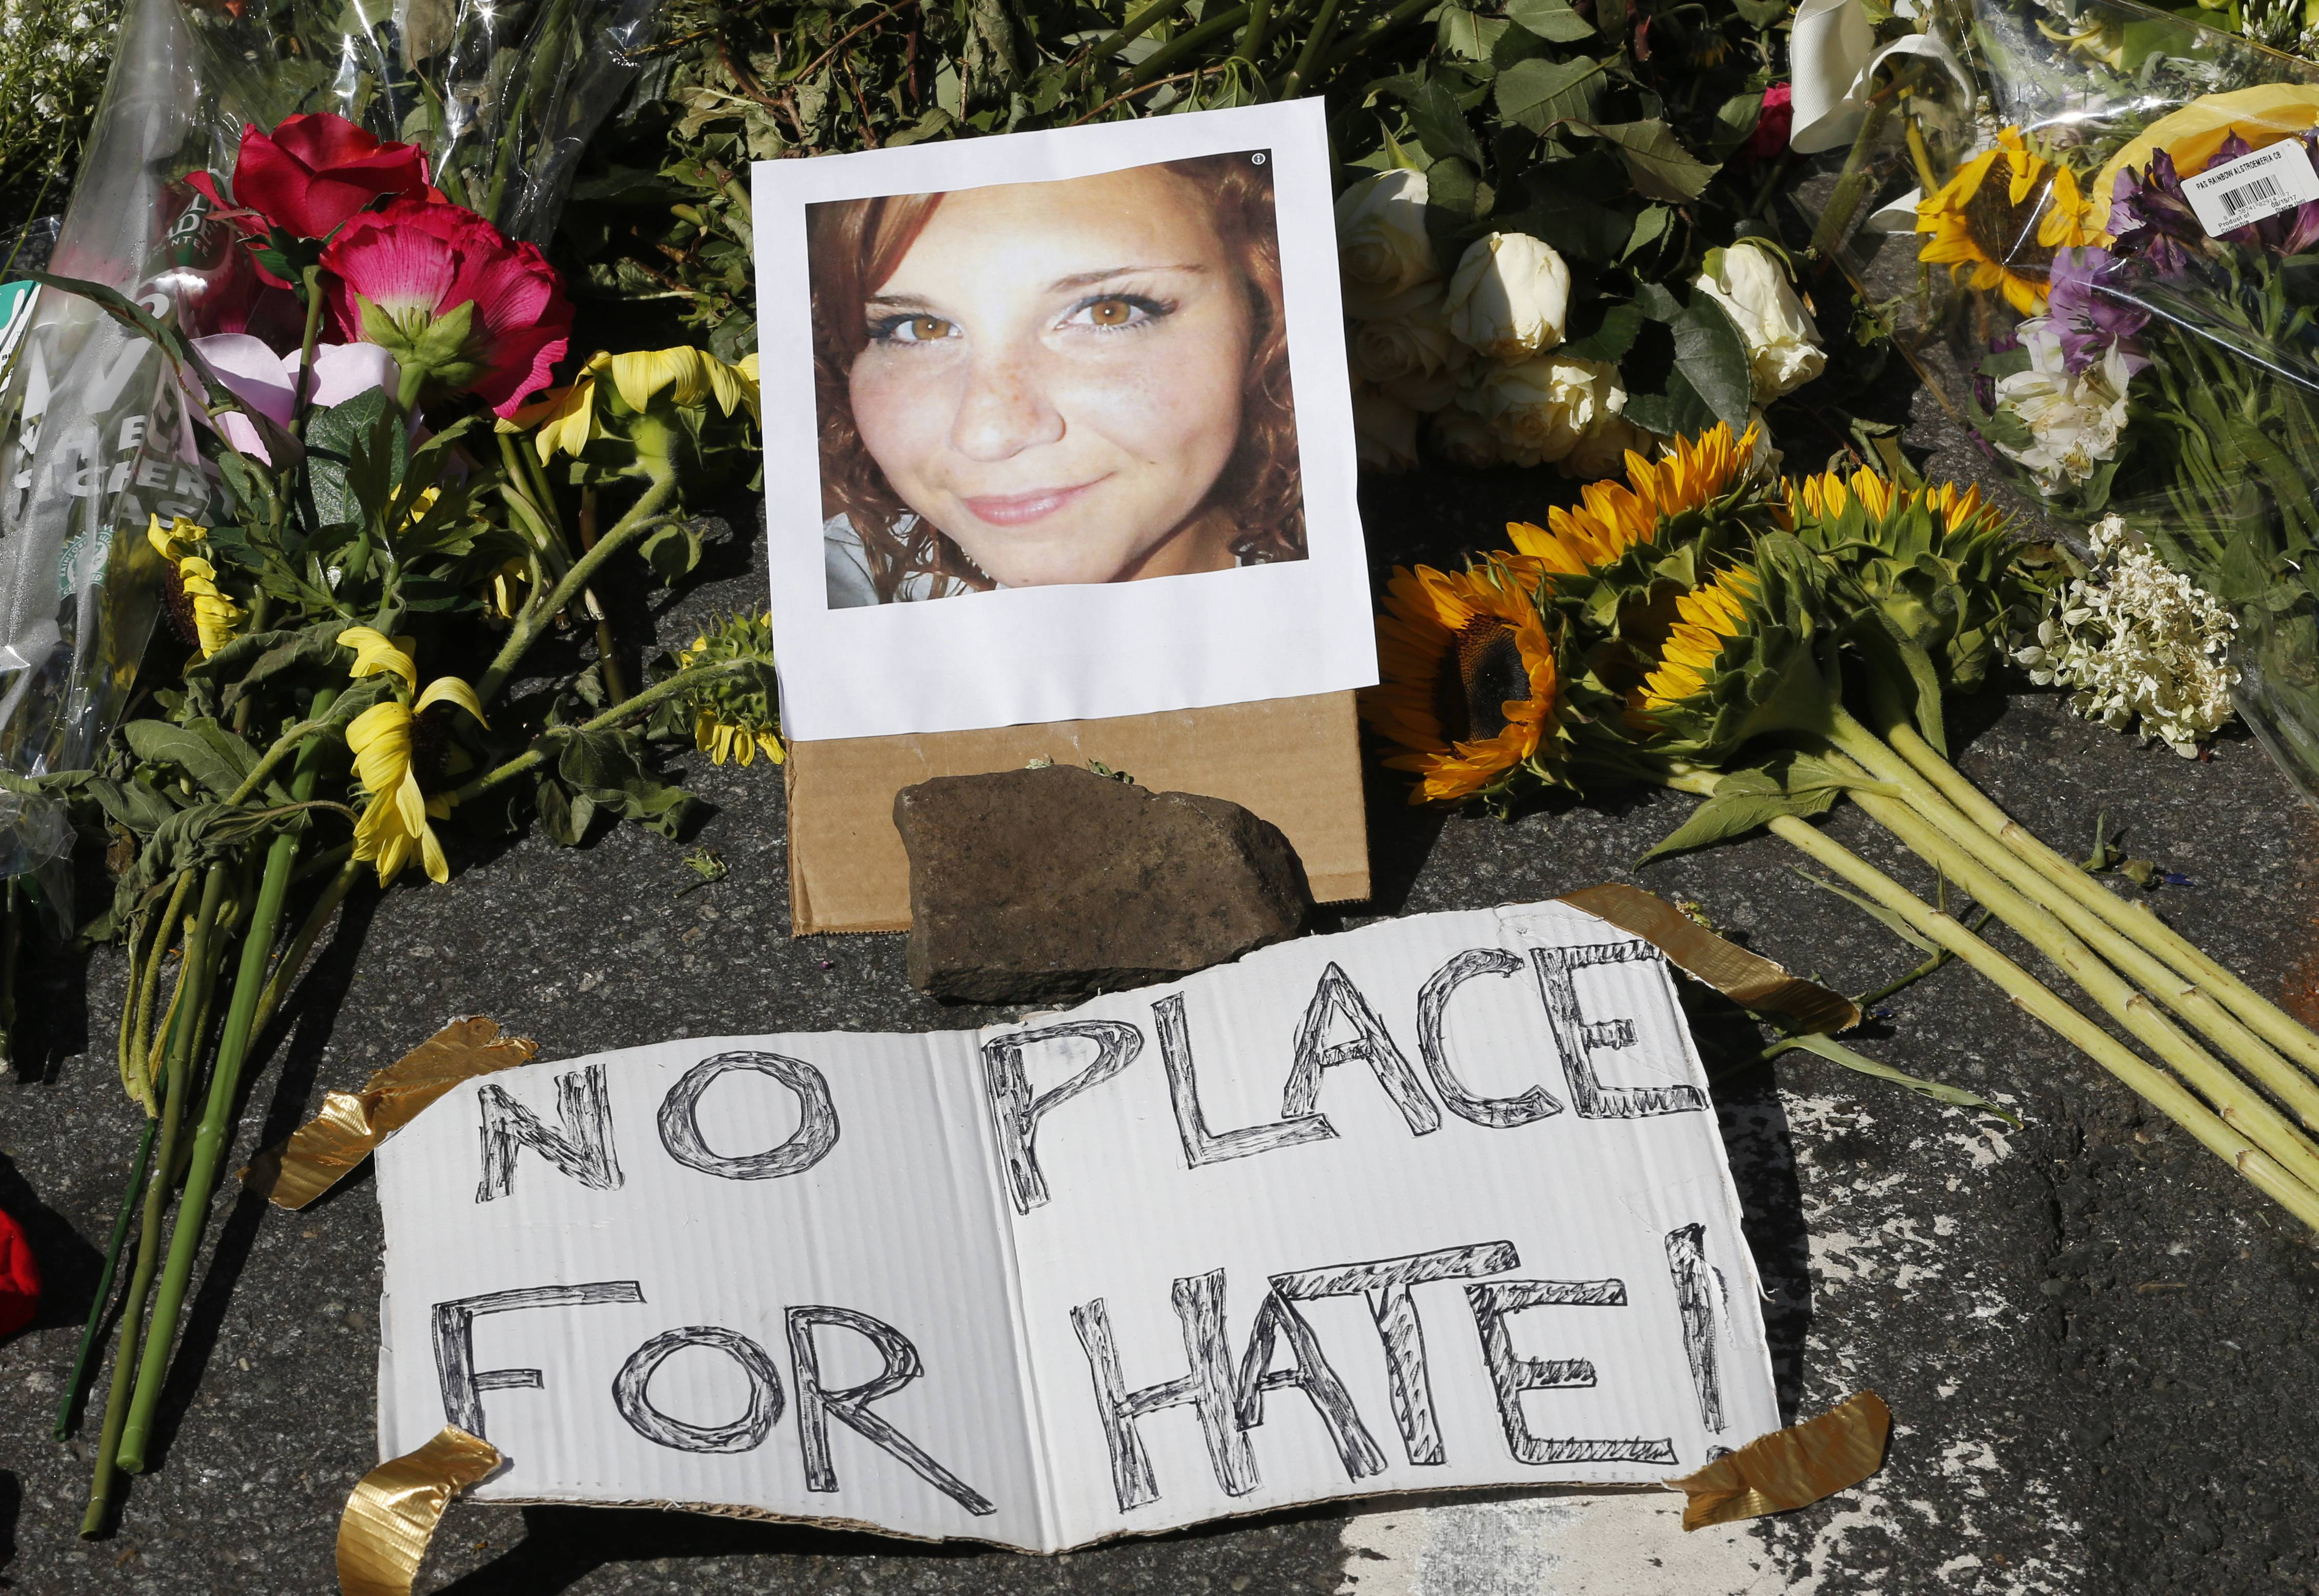 A makeshift memorial of flowers and a photo of victim Heather Heyer sits in Charlottesville, Virginia, Sunday. Heyer died when a car rammed into a group of people who were protesting the presence of white supremacists.